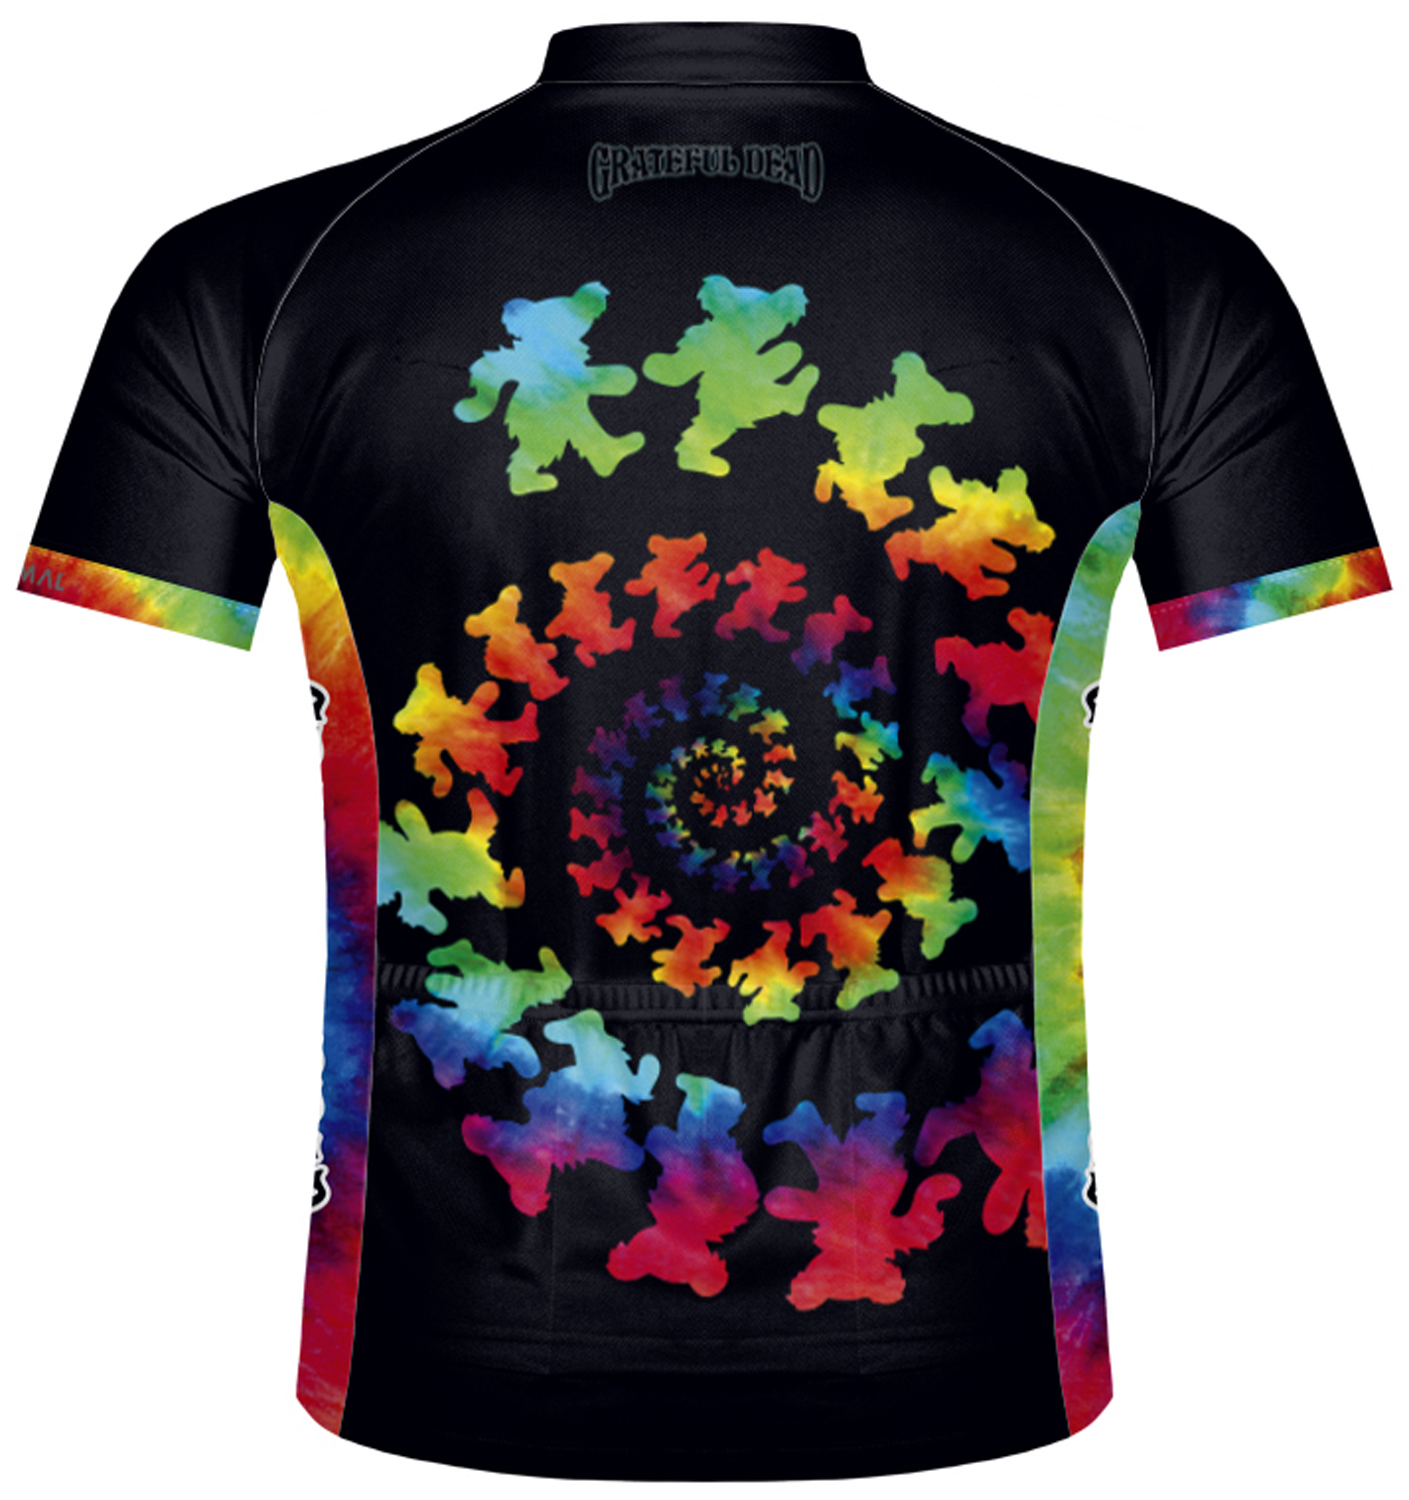 abcac8523 Primal Wear Grateful Dead Dancing Bears Tie Dye Cycling Jersey Mens with  socks. Thumb One. Thumb Two